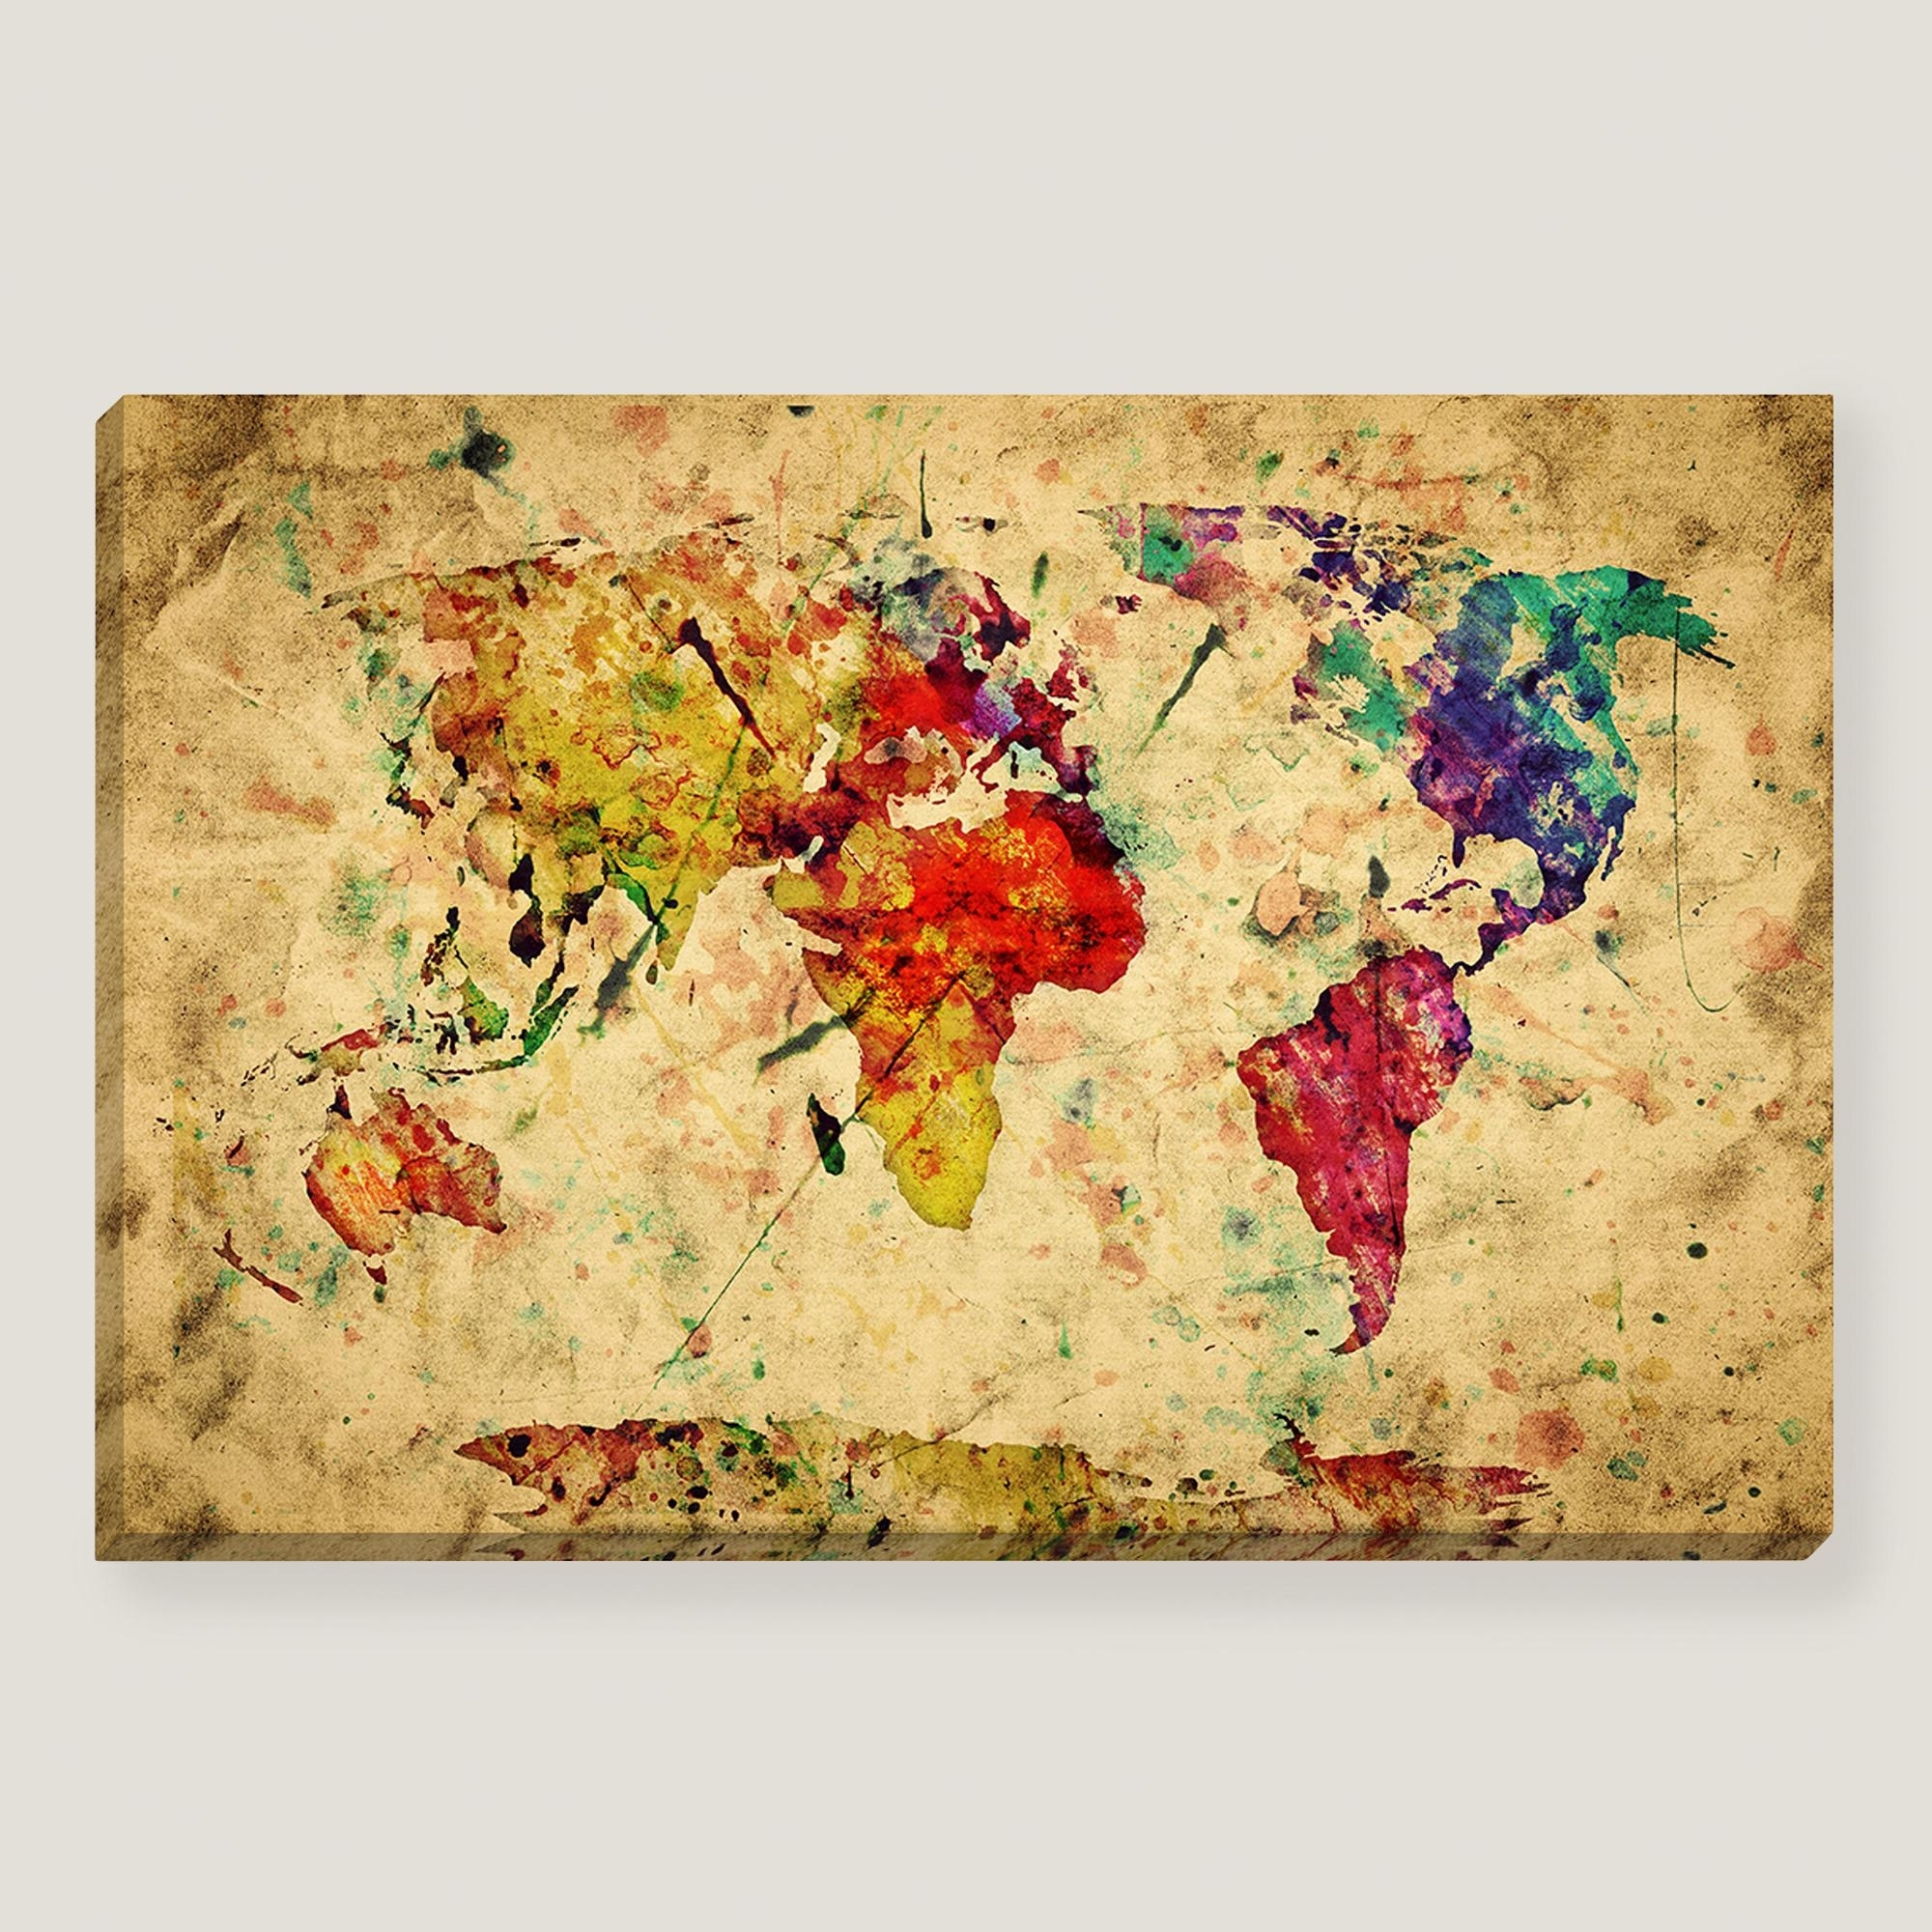 Popular Wall Art Design: Vintage Map Wall Art Amazing Design Collection Within Vintage Style Wall Art (View 4 of 15)